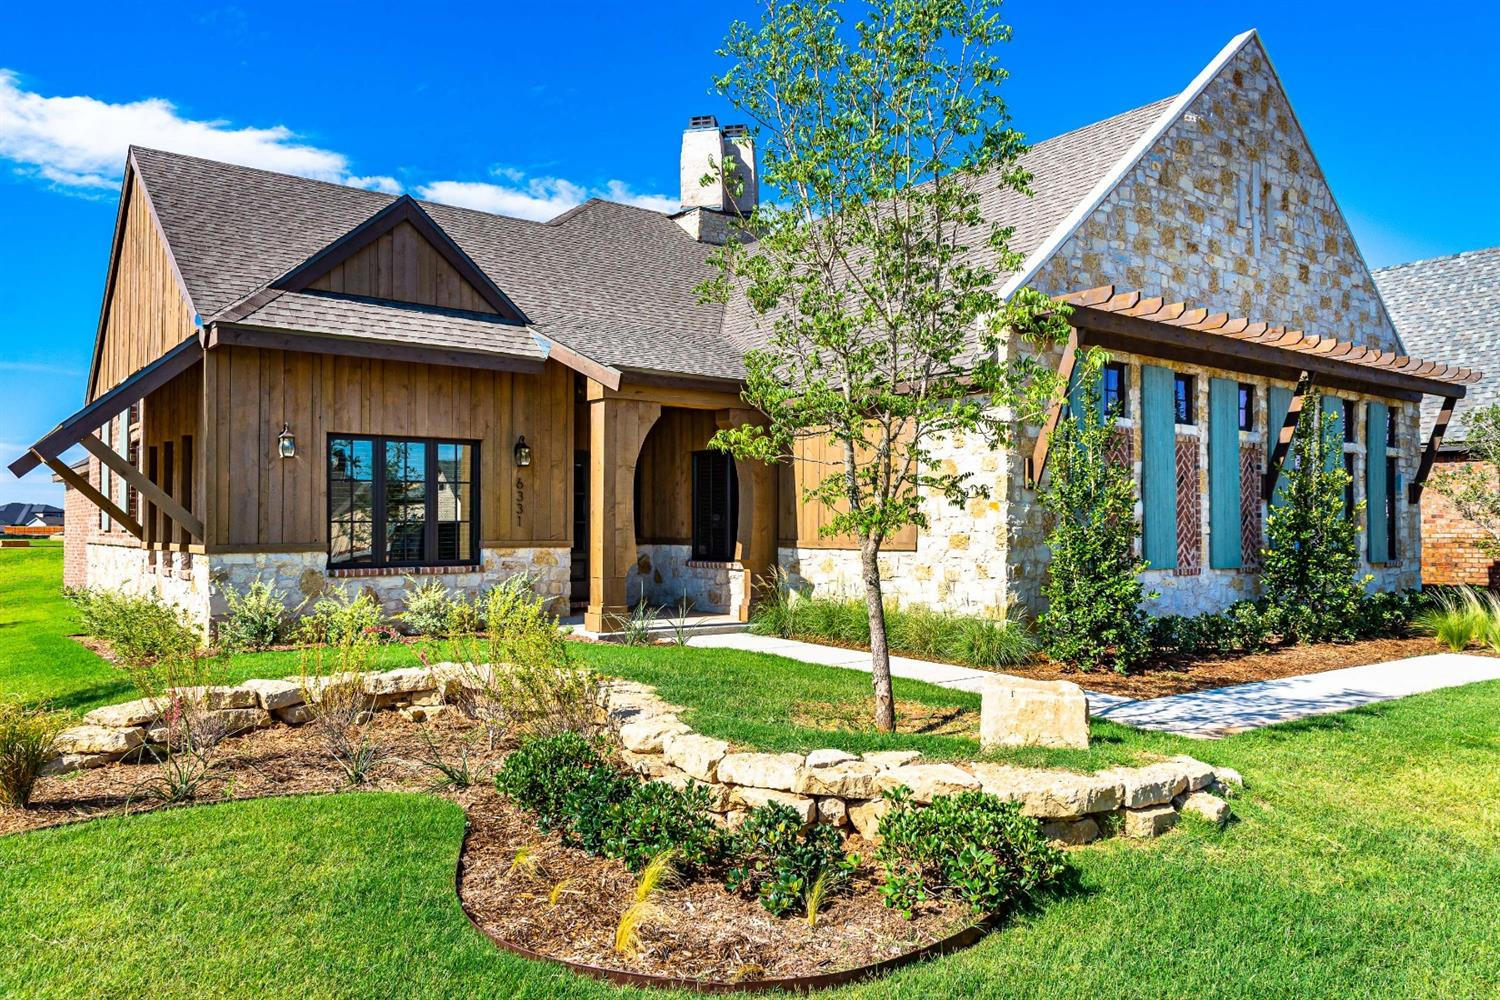 Stunning 4/3/3 New Construction by Ventura Homes with Bonus Room in the Trails! Walk into special ceilings, custom beams tons of natural light & open floorplan! Amazing Kitchen offers 2 gas ranges & double ovens, huge island, windows, walk-in pantry, side by side Fridge/Freezer & great storage space! Isolated Master Suite with special ceilings, double vanities, soaking tub, walk-in shower & walk-in closet with built-ins & 3rd row! Other bedrooms are spacious & offer walk-in closets, Jack-in Jill Bath & great storage. Heated & Cooled Bonus Room with French Door perfect for 2nd living, playroom or office & opens to backyard with Outdoor Fireplace & Pergola! Low maintenance fenced backyard perfect for entertaining! Fully landscaped, Sprinklers, Window Treatments & 1-2-10 Builder Warranty!  Walk to both neighborhood parks, close to shopping, Restaurants & Marsha Sharp! Frenship ISD! Check it out before its too late!